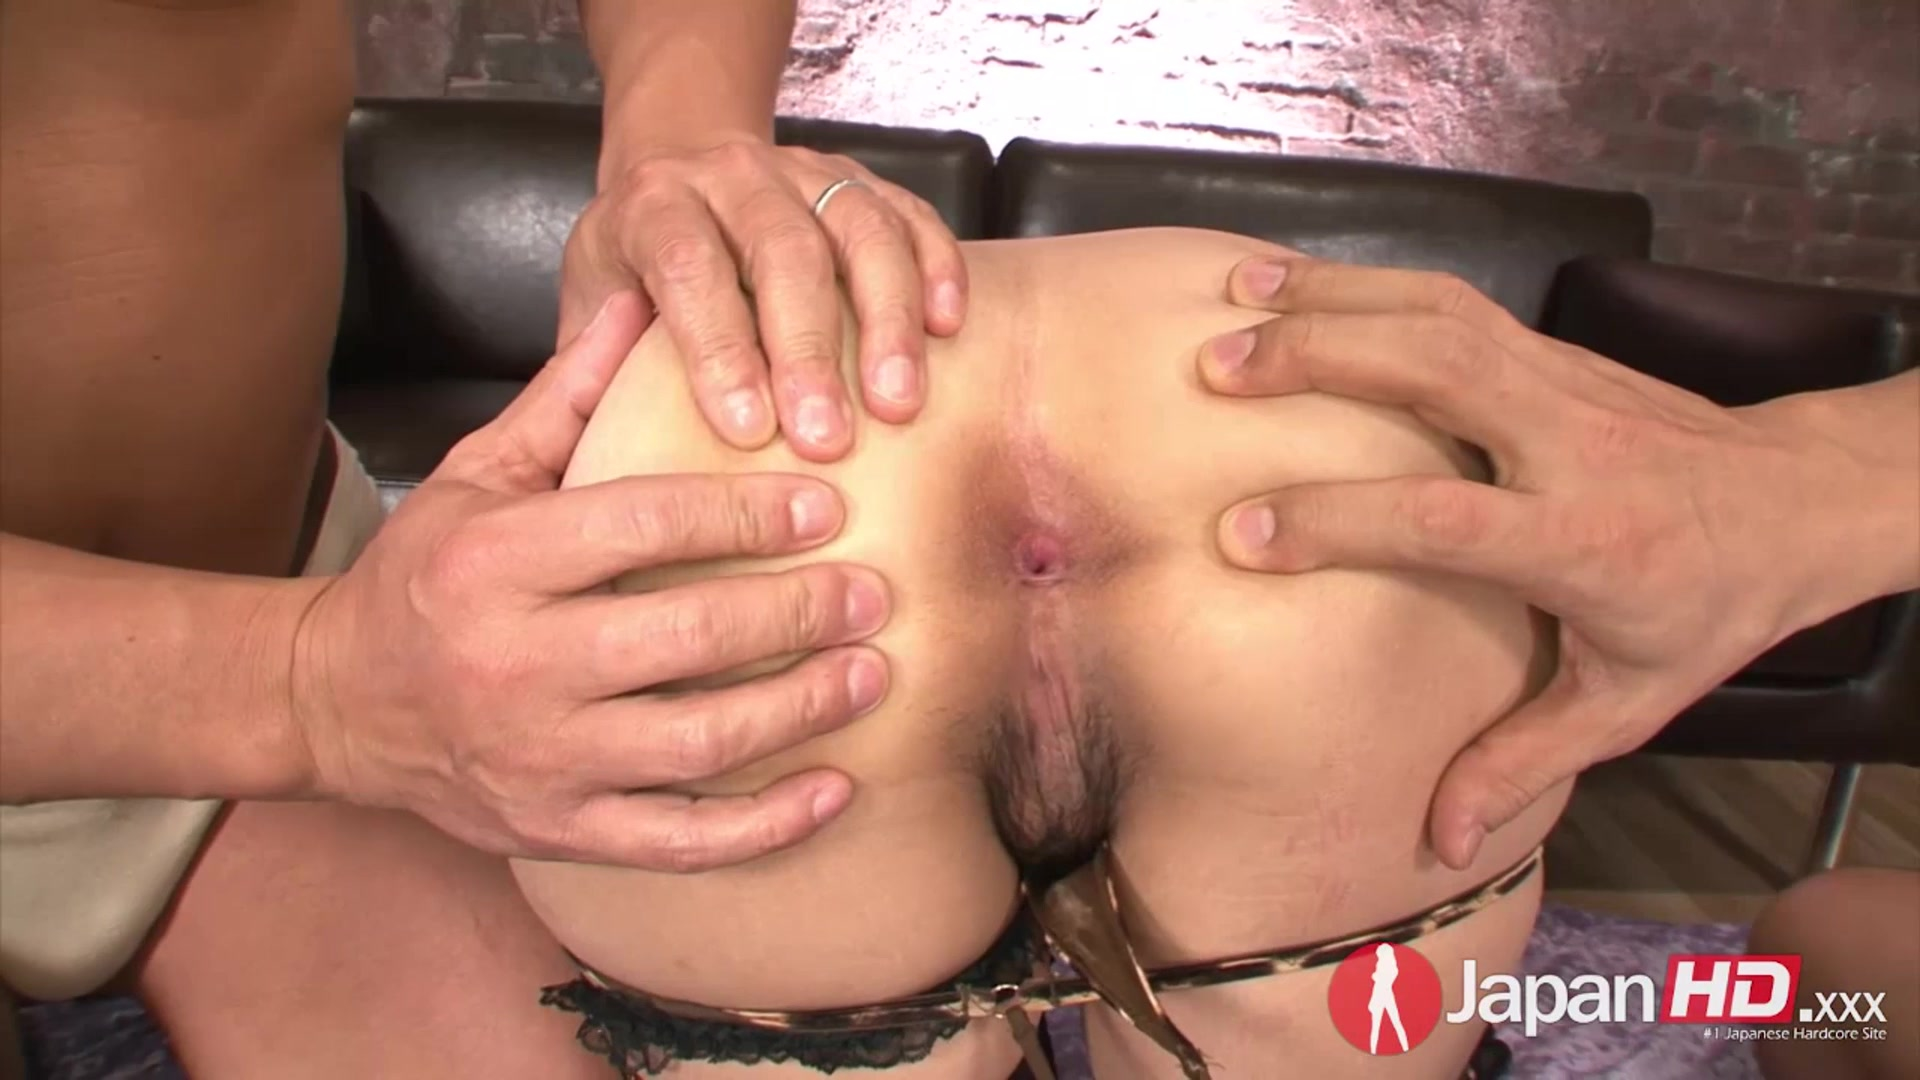 Double creampie for petite Japanese Milf